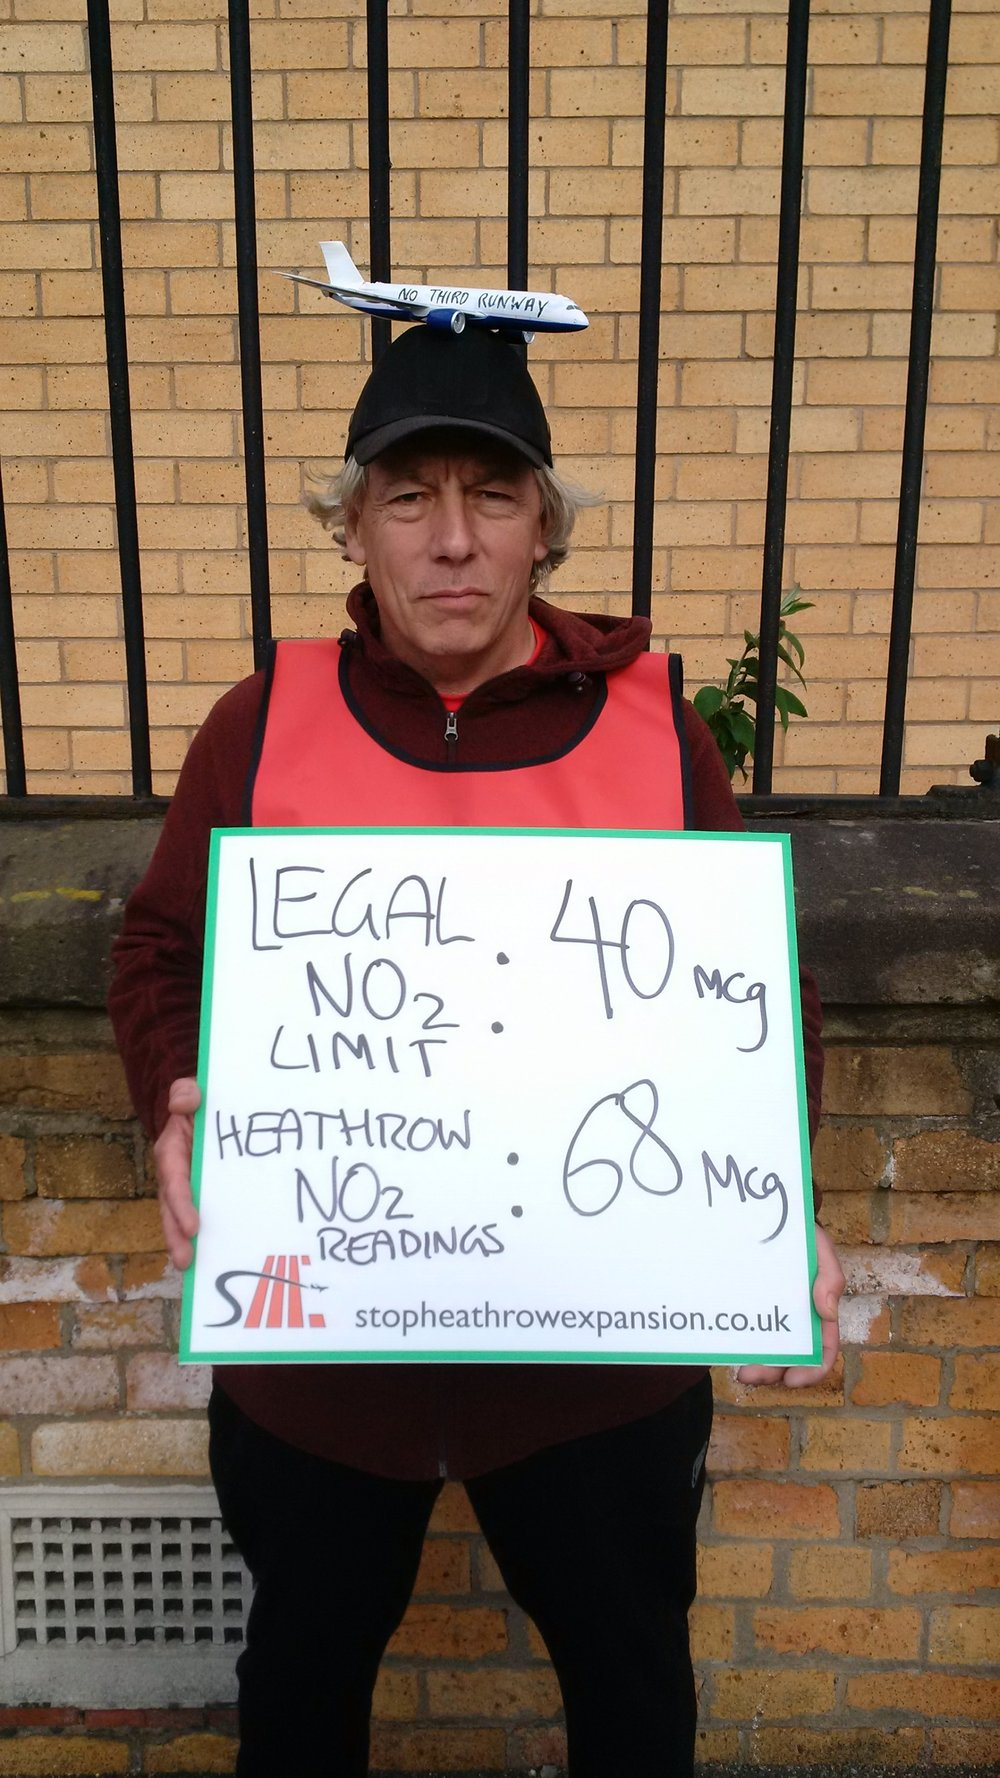 Nitrogen Dioxide readings around Heathrow are reaching 68 microgrames per cubic metre. The legal maximum limit is 40.